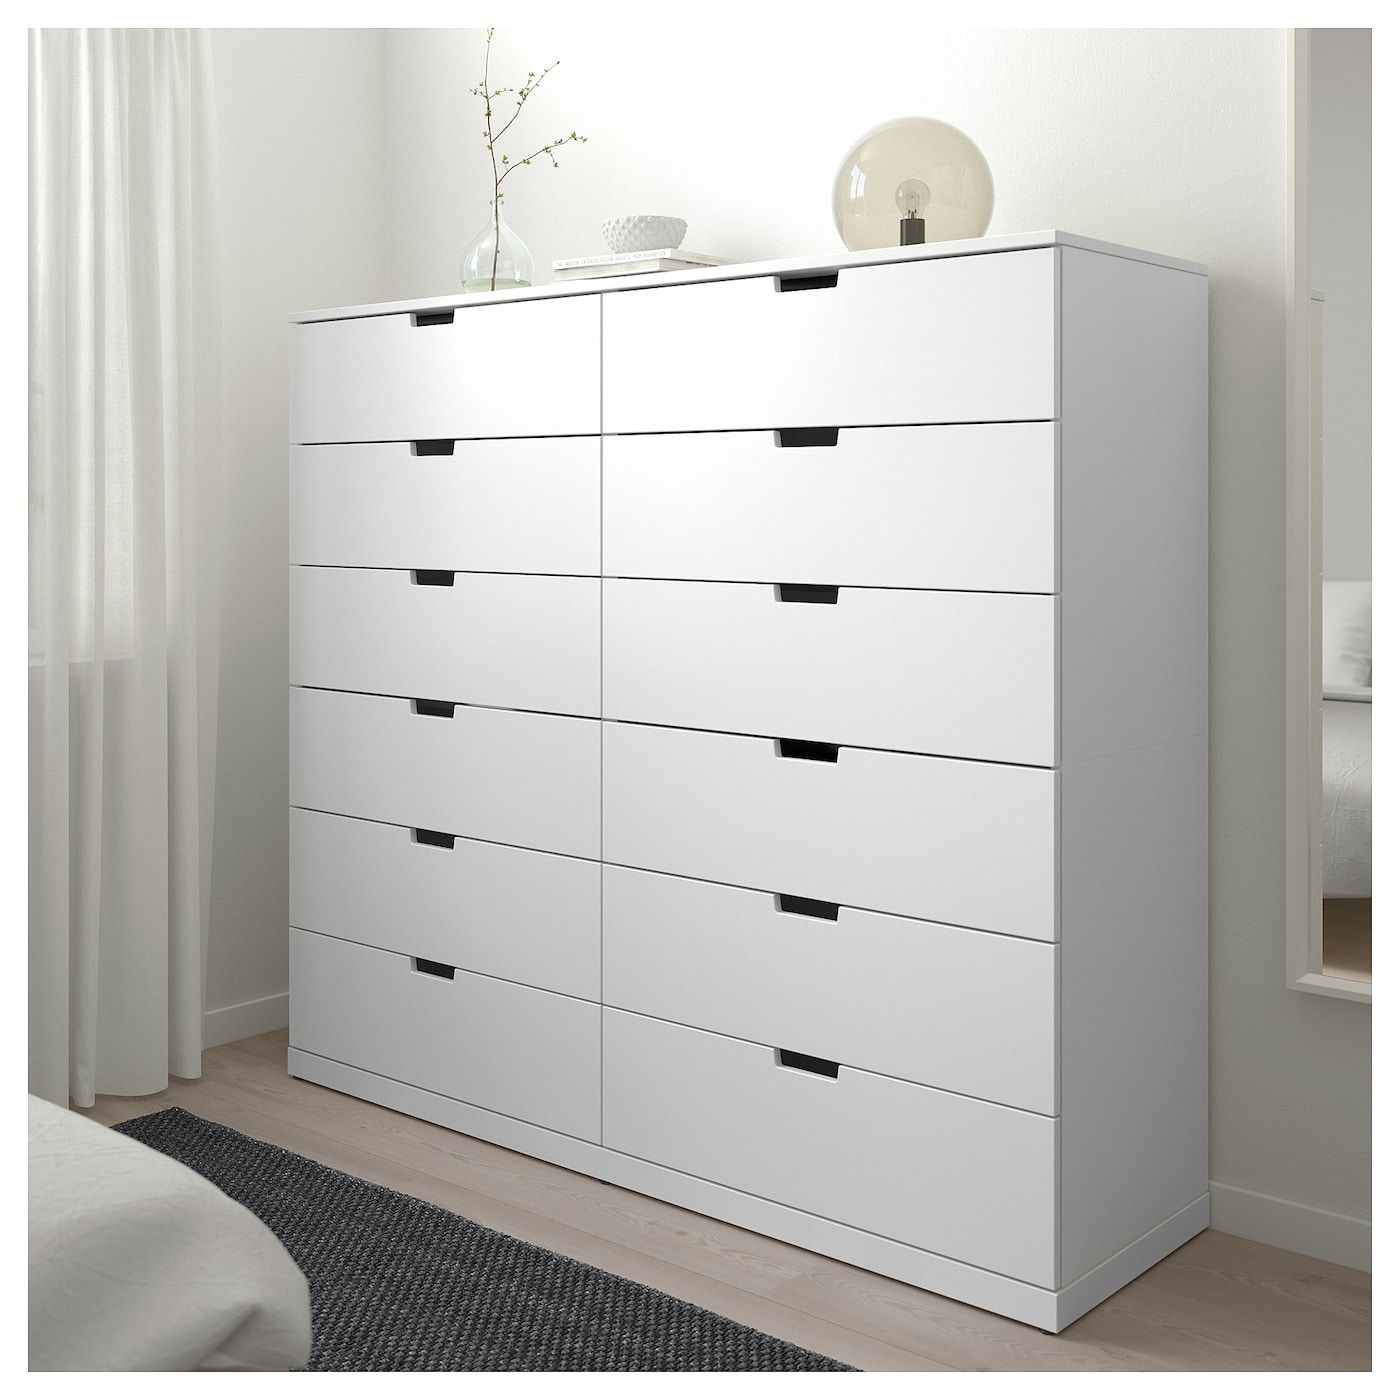 Nordli 12 Drawer Chest White Ikea Ikea Nordli Ikea Chest Of